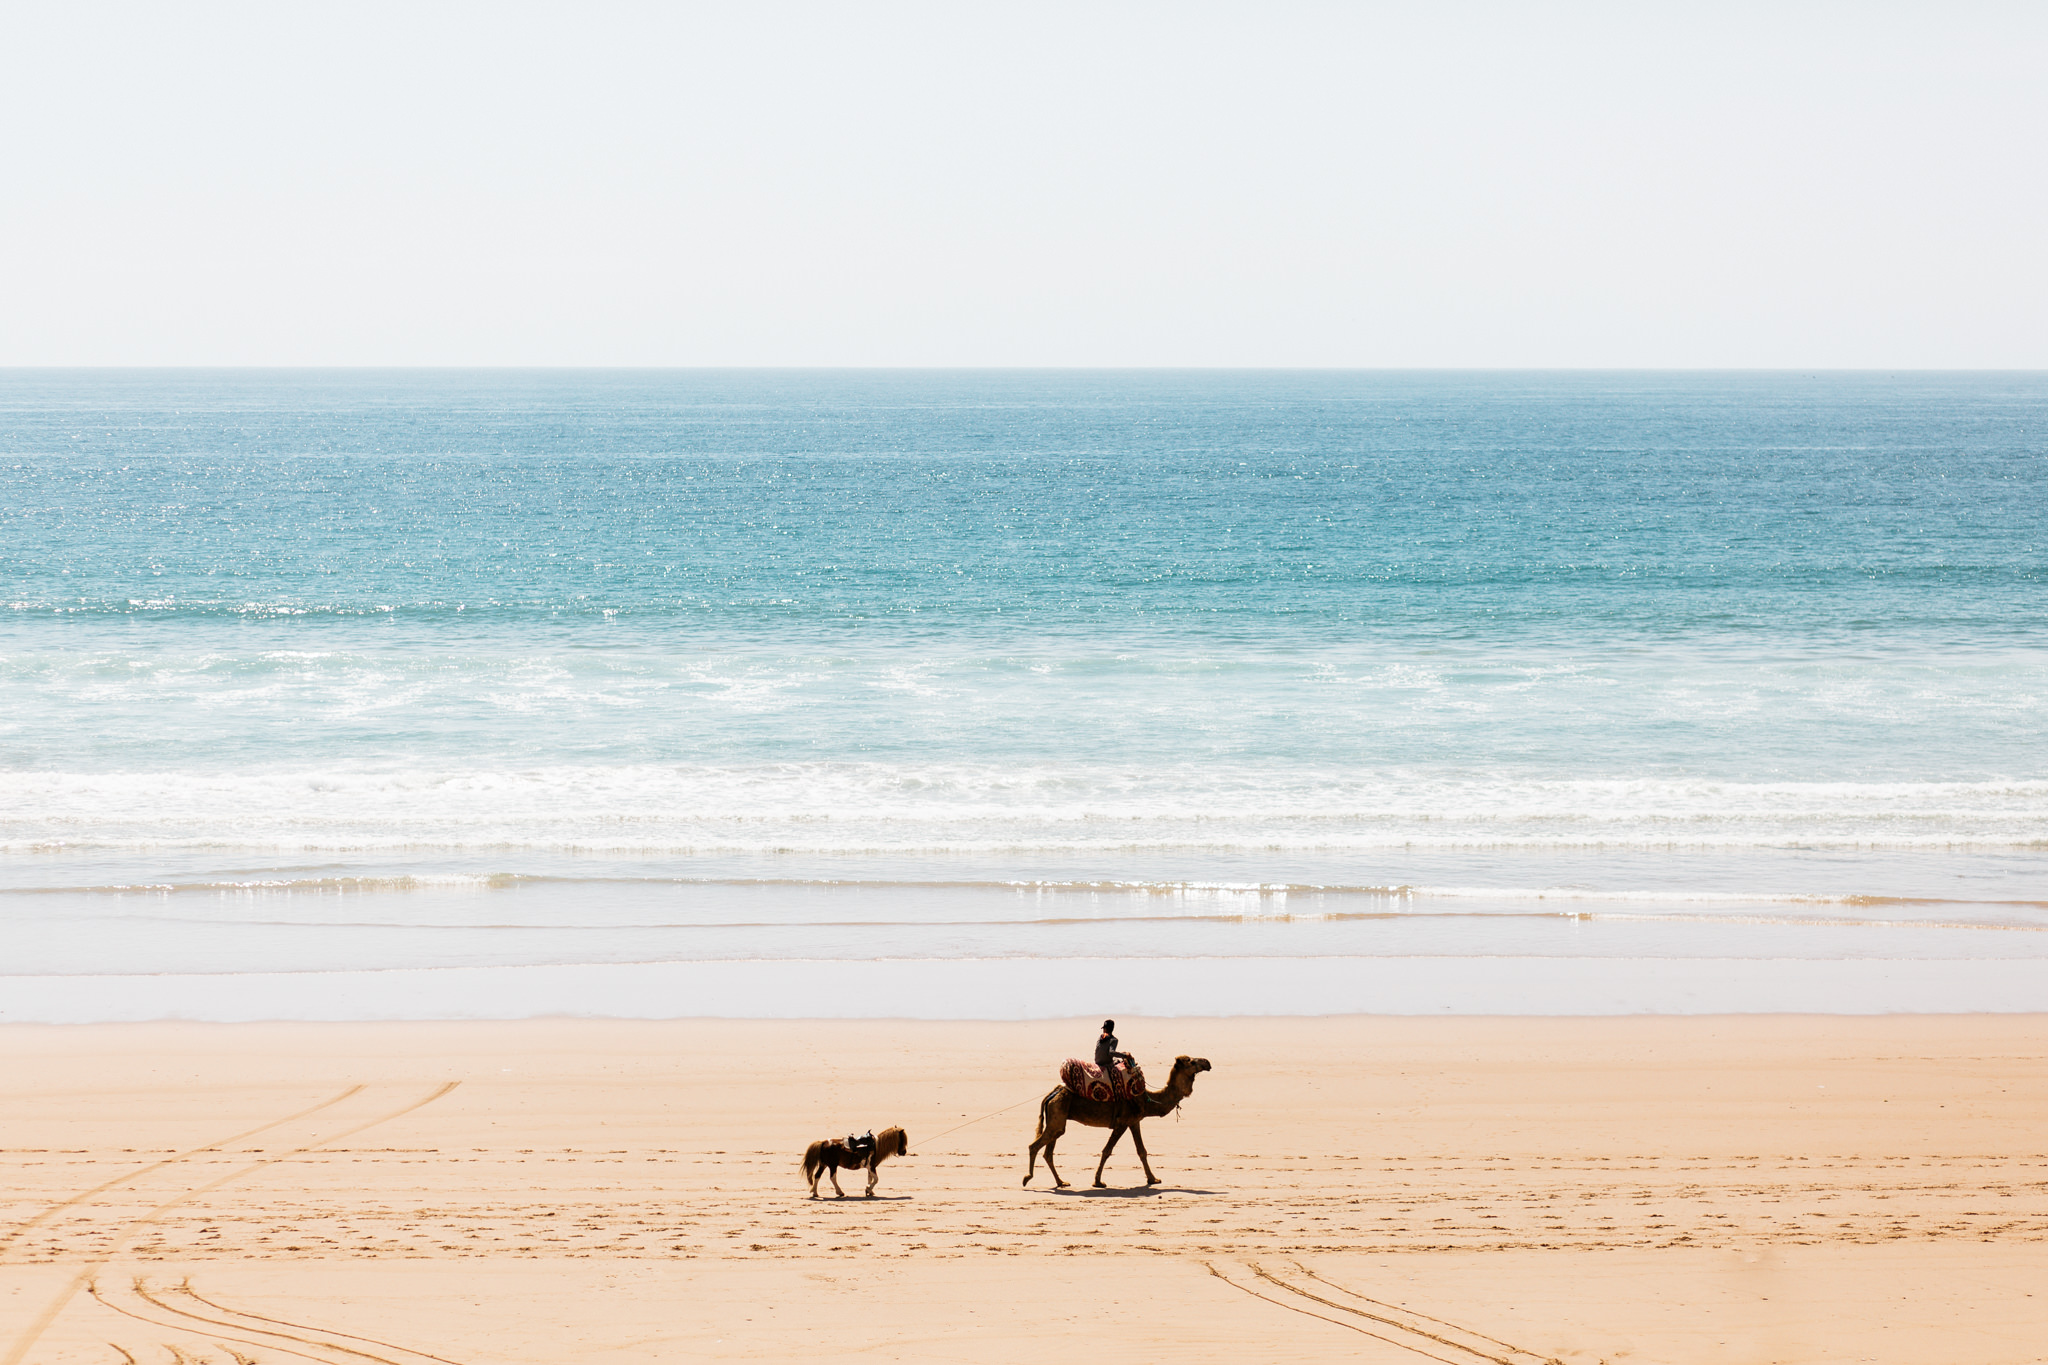 camel and horse walking on beach in morocco